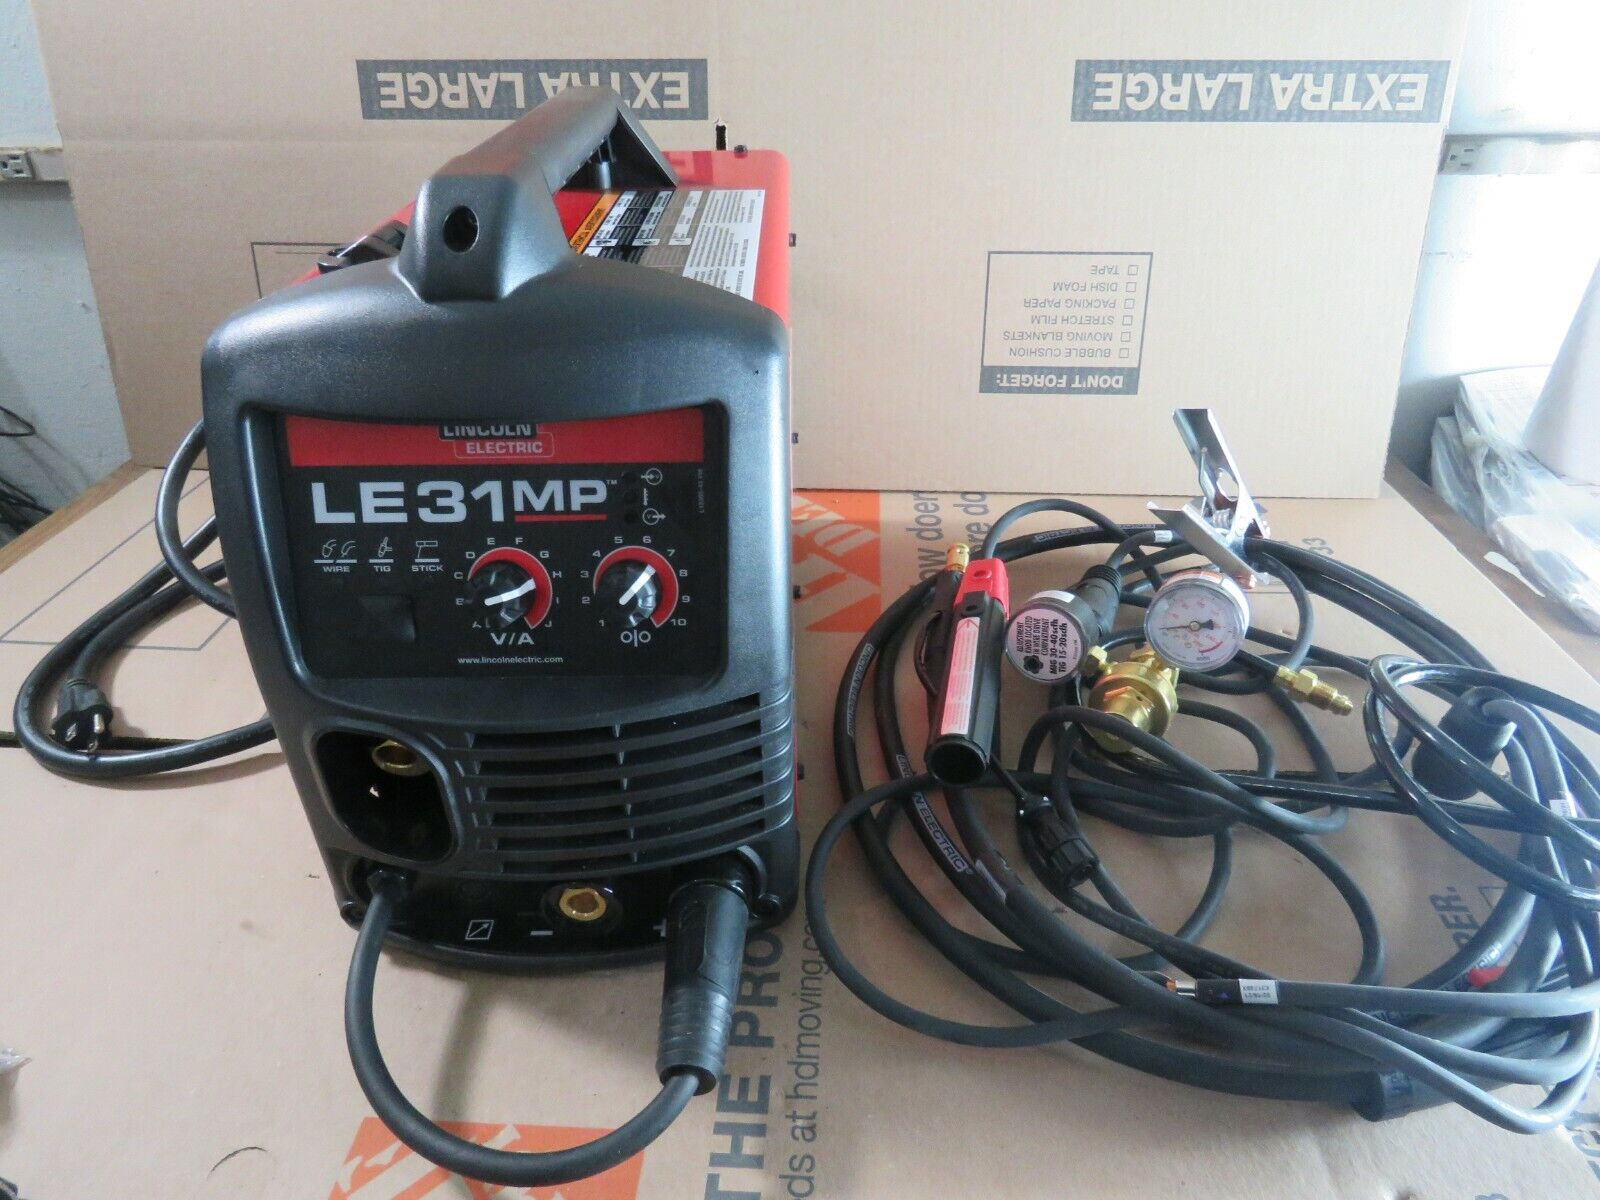 Lincoln Electric LE31MP MIG Welder with Multi Processes 120V. Available Now for 599.99